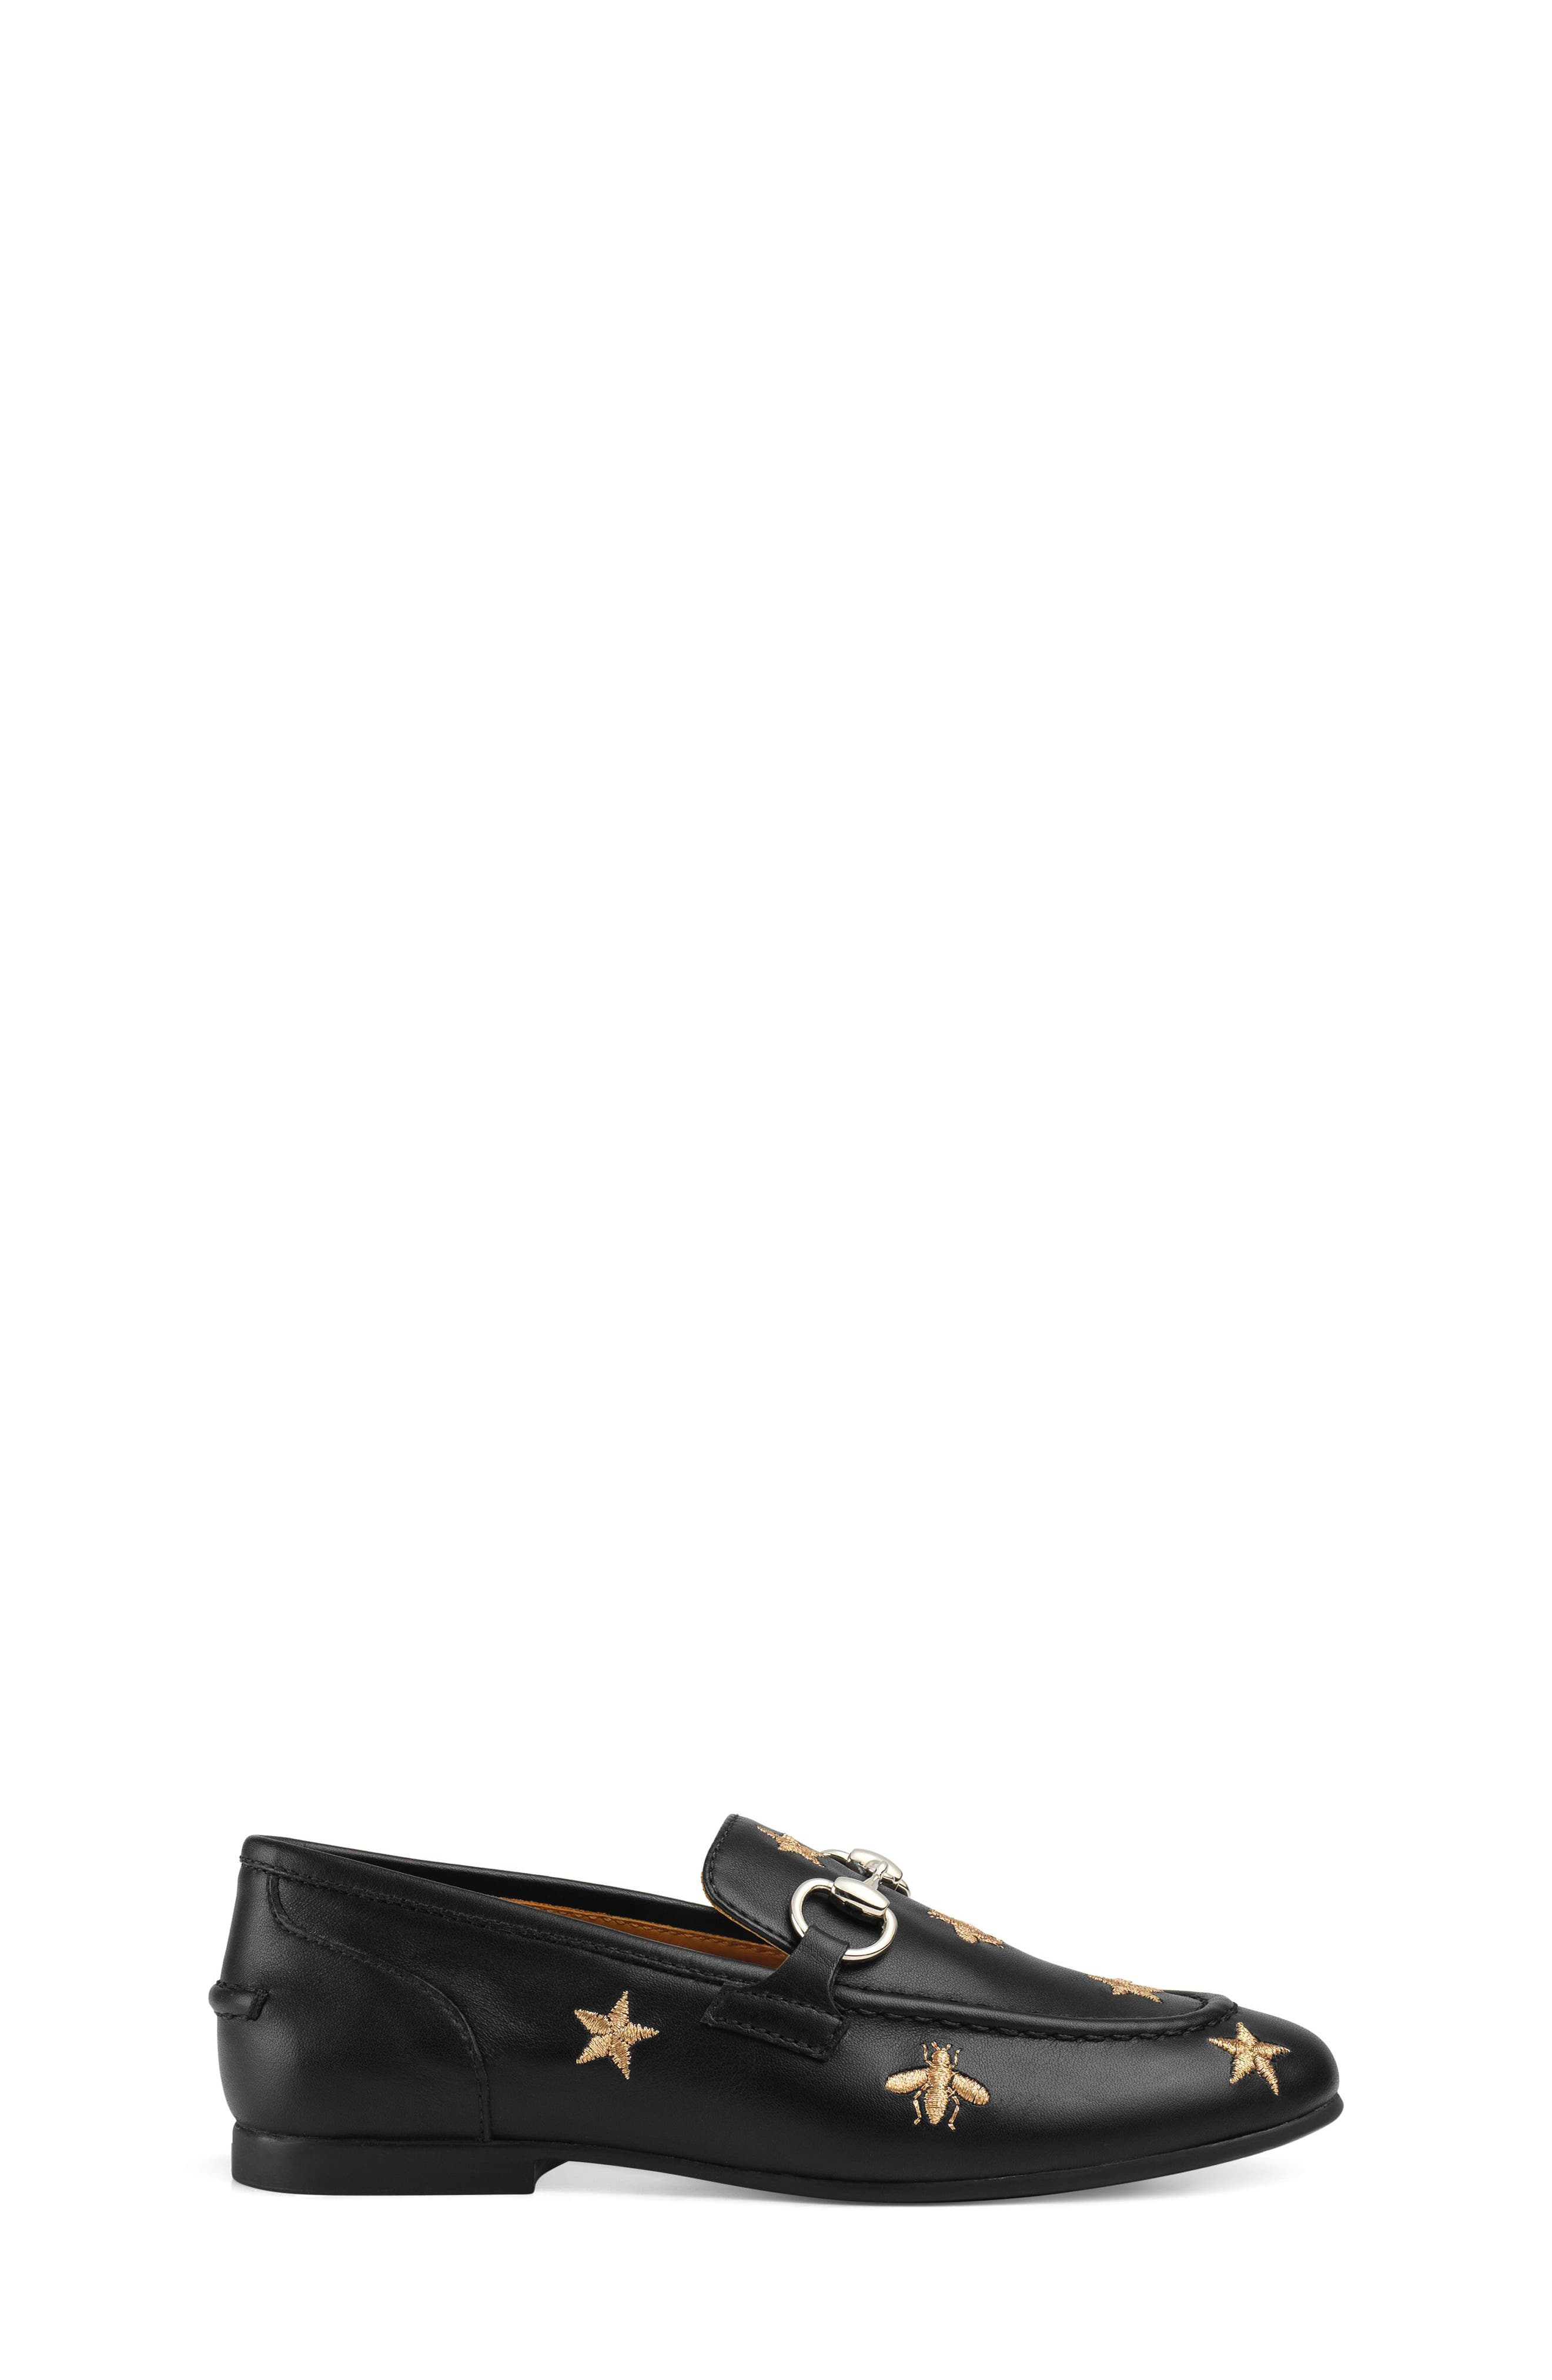 Jordaan Bit Loafer,                             Alternate thumbnail 2, color,                             BLACK